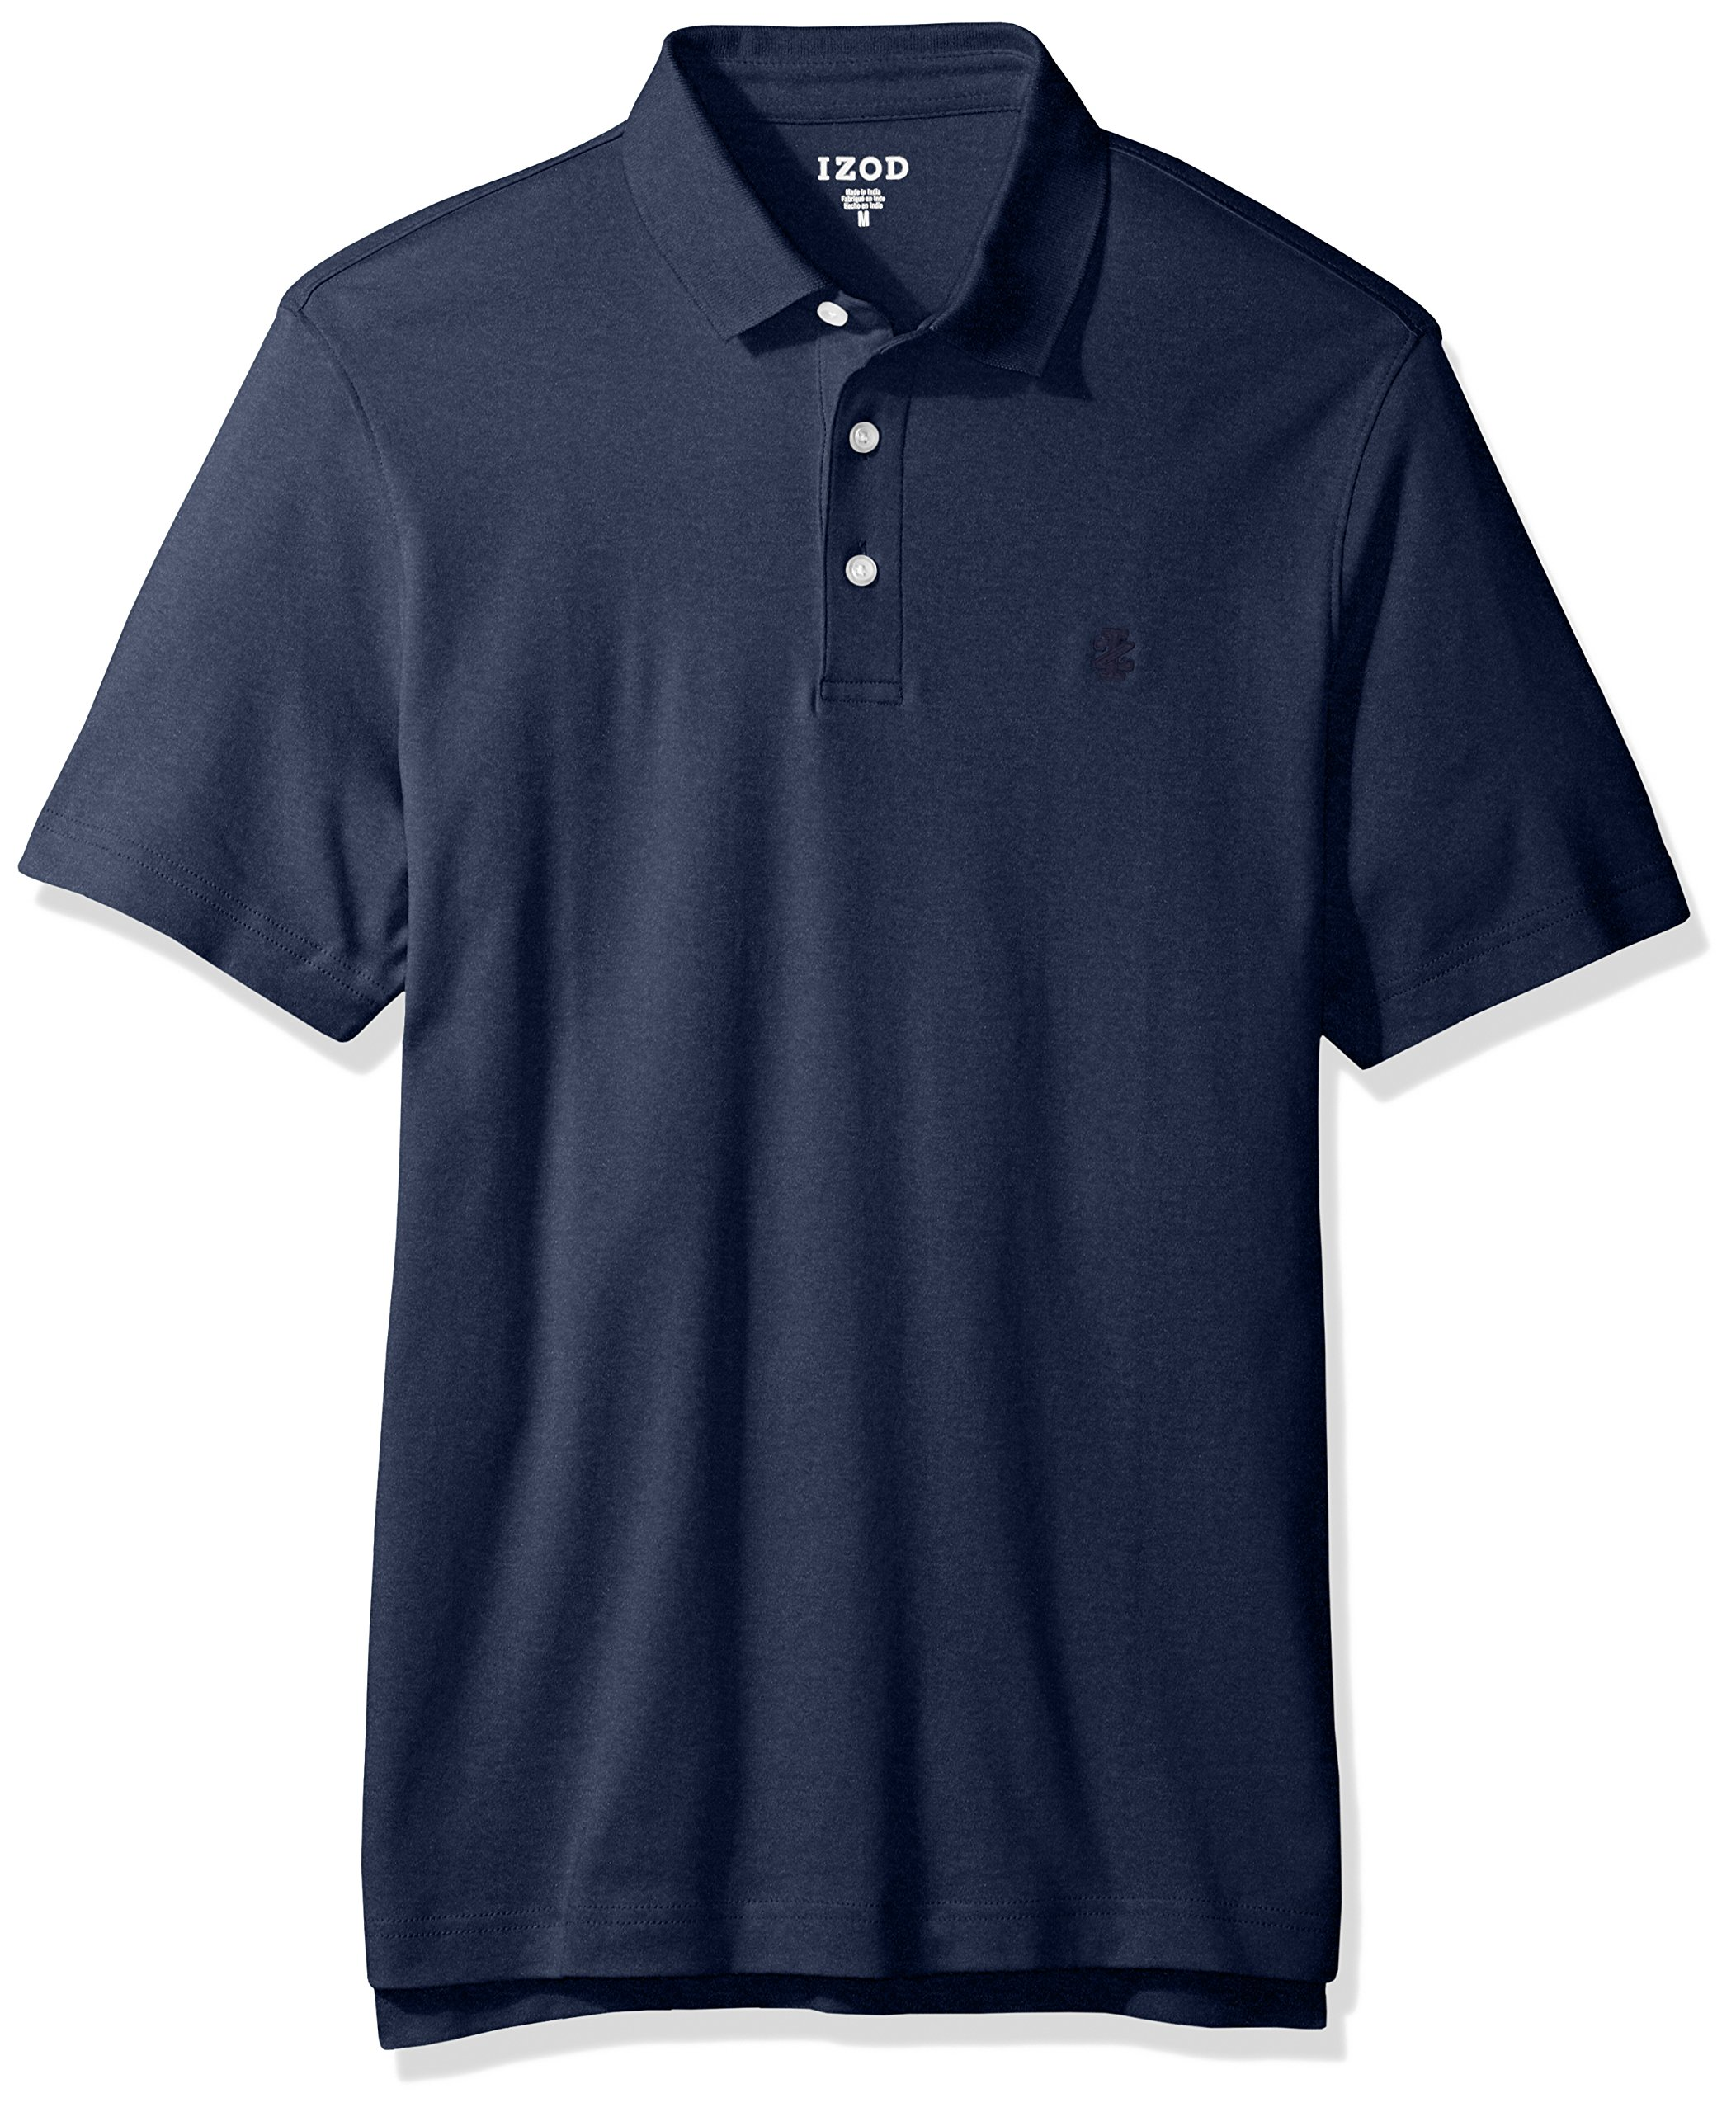 IZOD Men's Solid Interlock Polo Shirt, Peacoat Heather, X-Large by IZOD (Image #1)